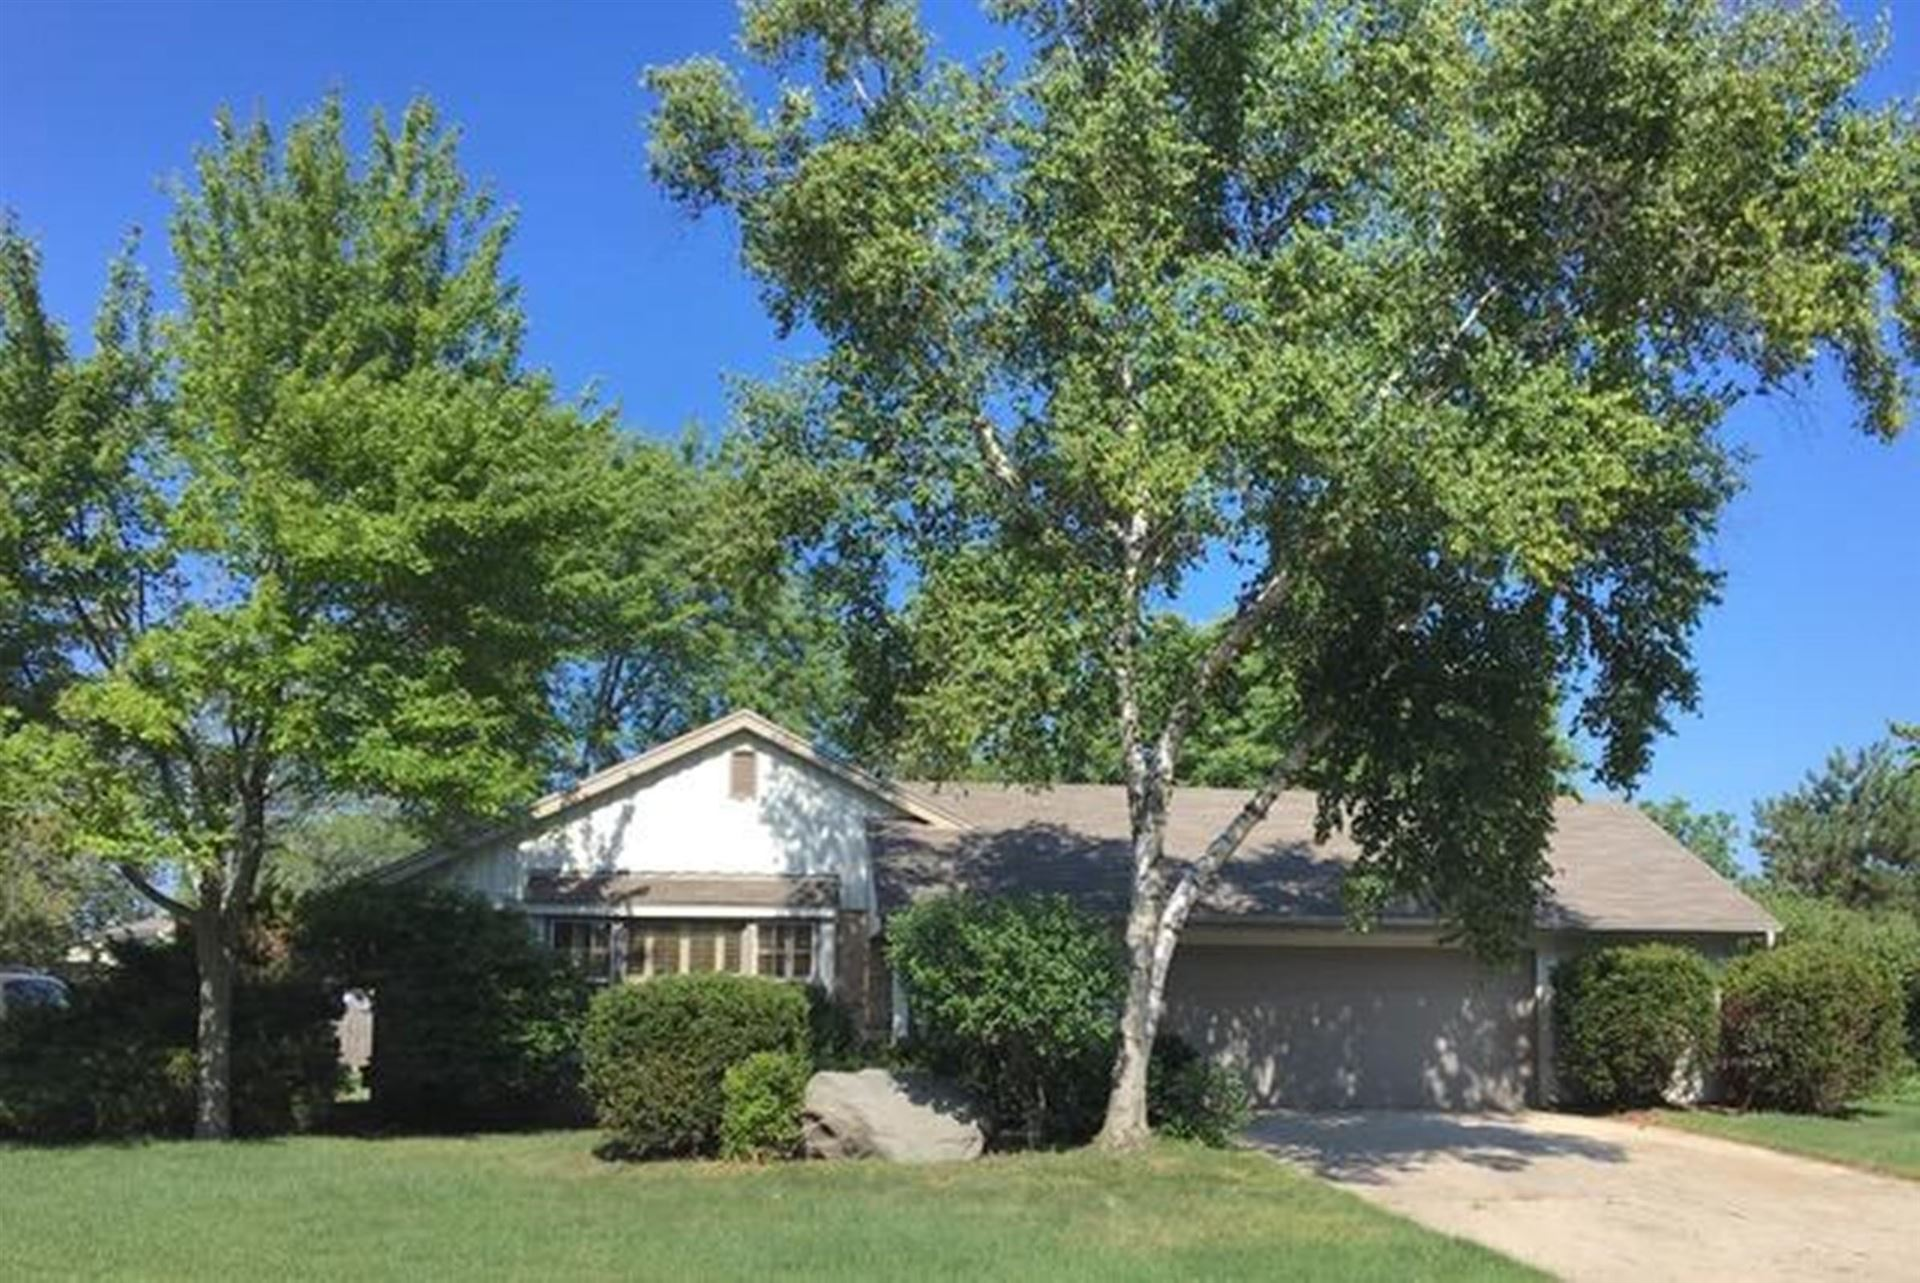 4245 S Tie Ave, New Berlin, WI 53151 - #: 1679568